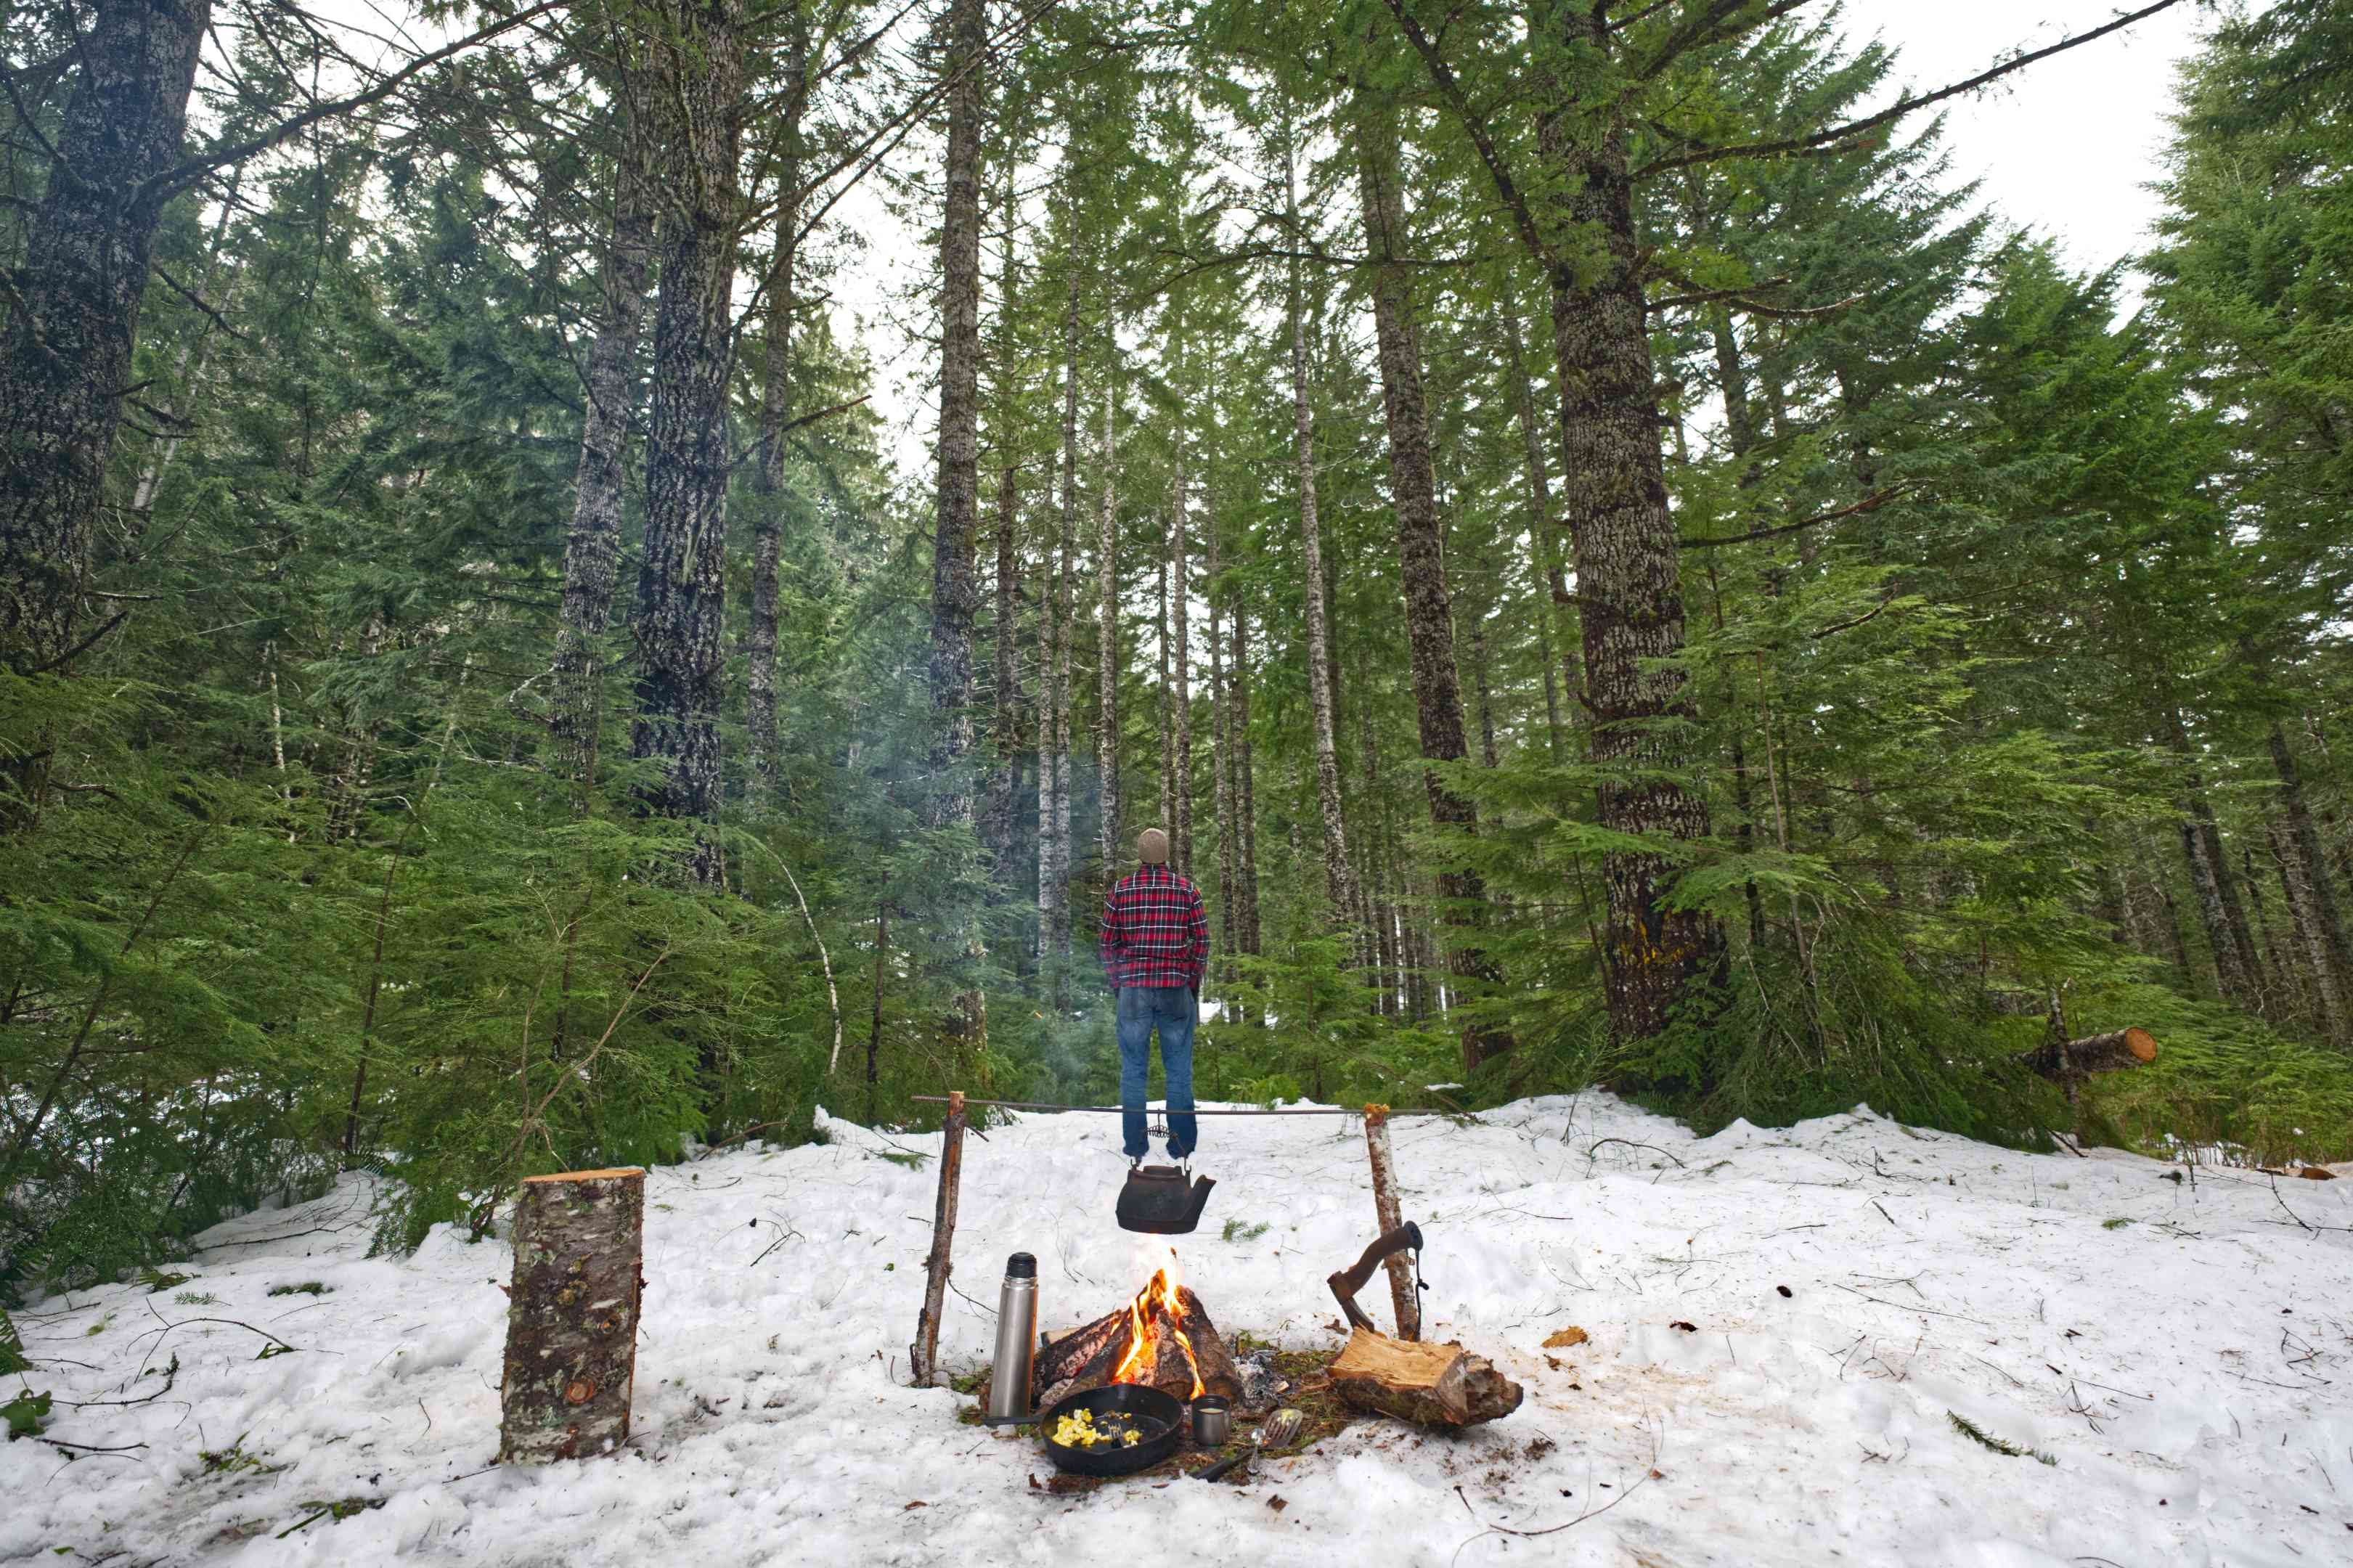 person camping in snowy woods with trees and campfire